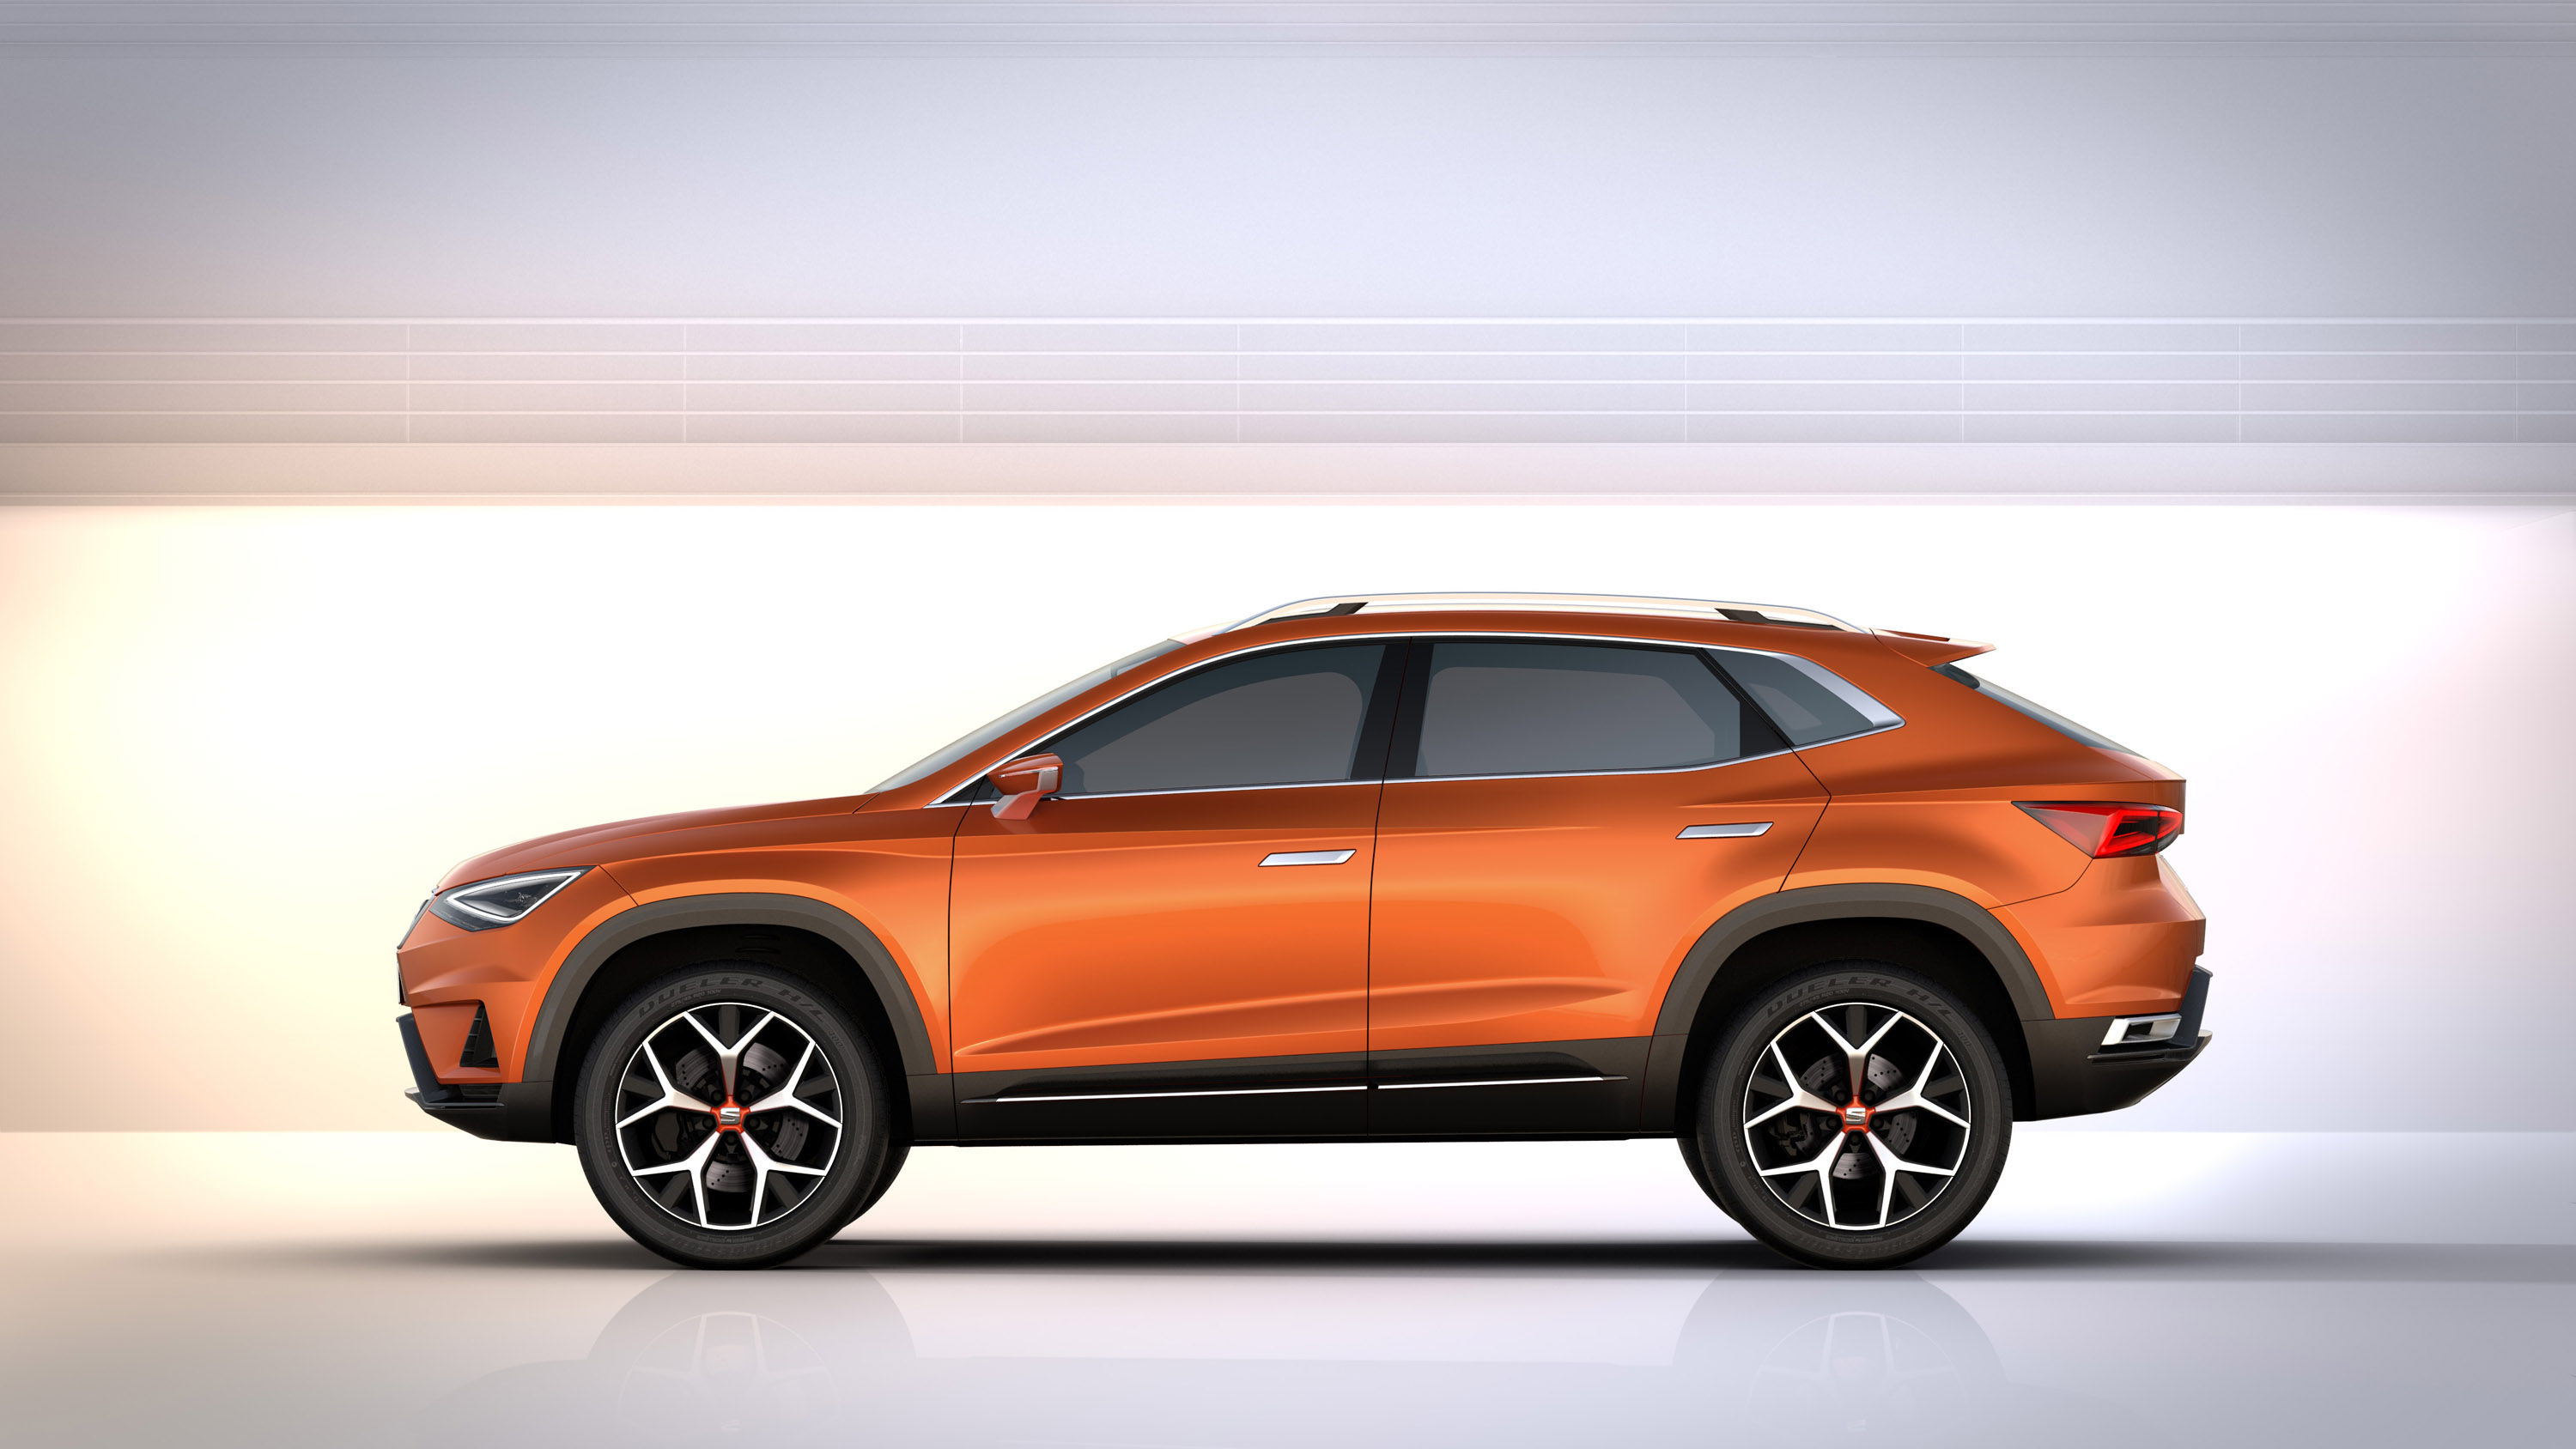 Seat 20v20 Concept Picture 6 Of 16 My 2015 Size 3000x1688